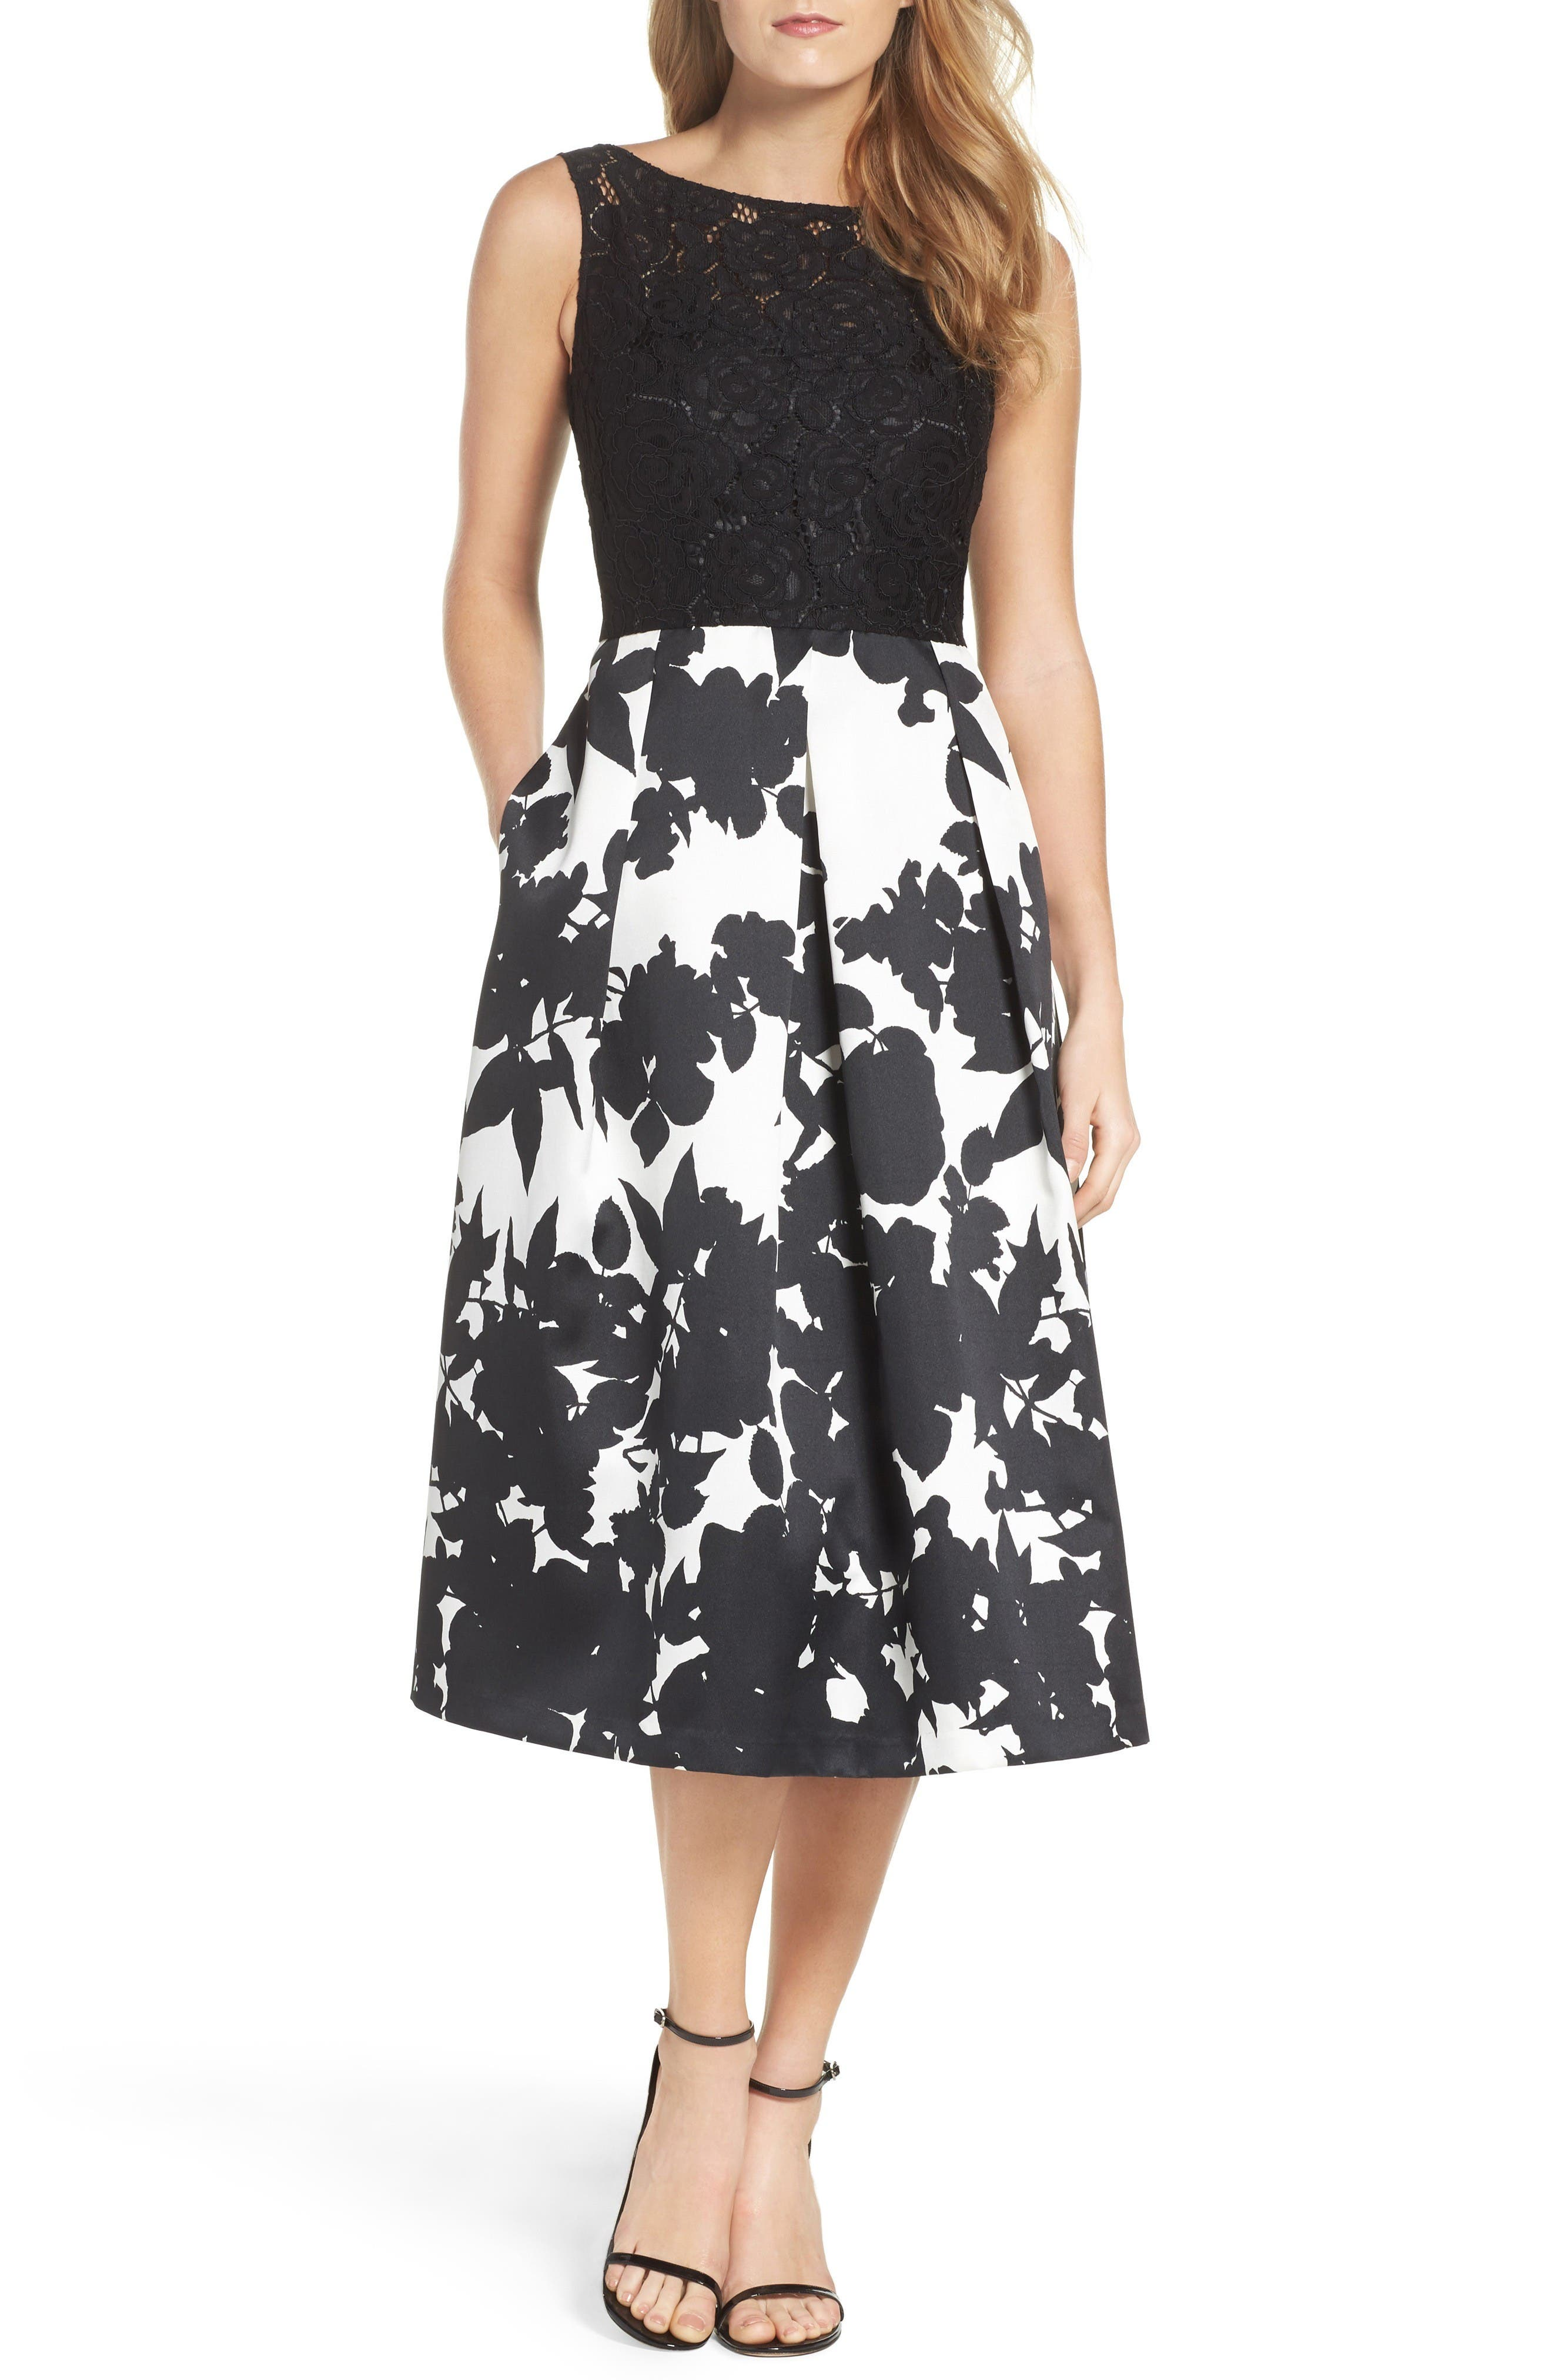 Alternate Image 1 Selected - Ellen Tracy Lace & Floral Faille Midi Dress